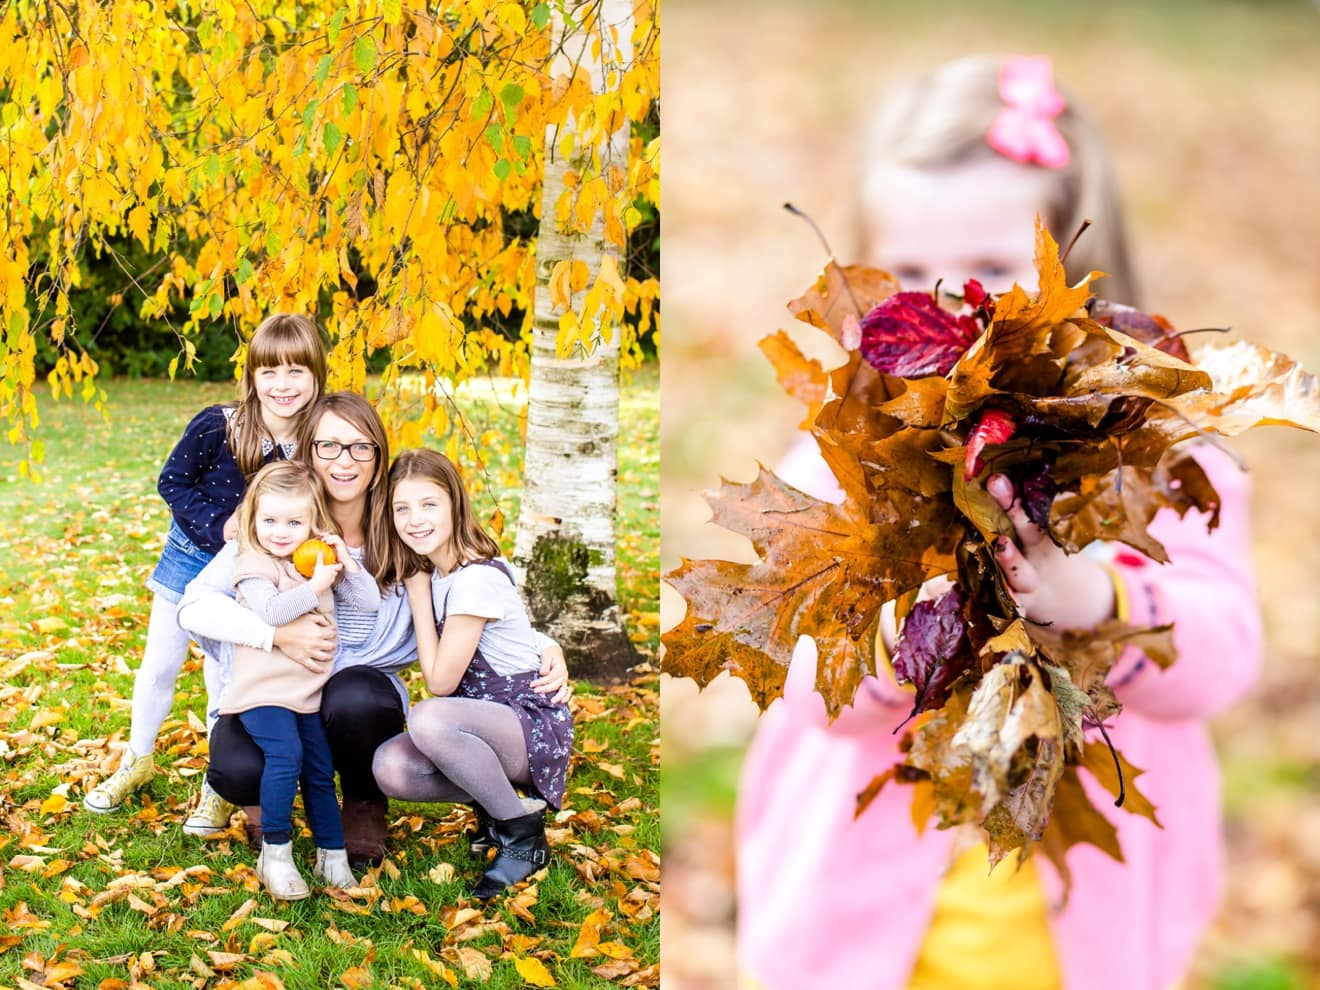 3-autumn-mini-session-family-surrey-eddie-judd-photography-eddie-judd-photography-3